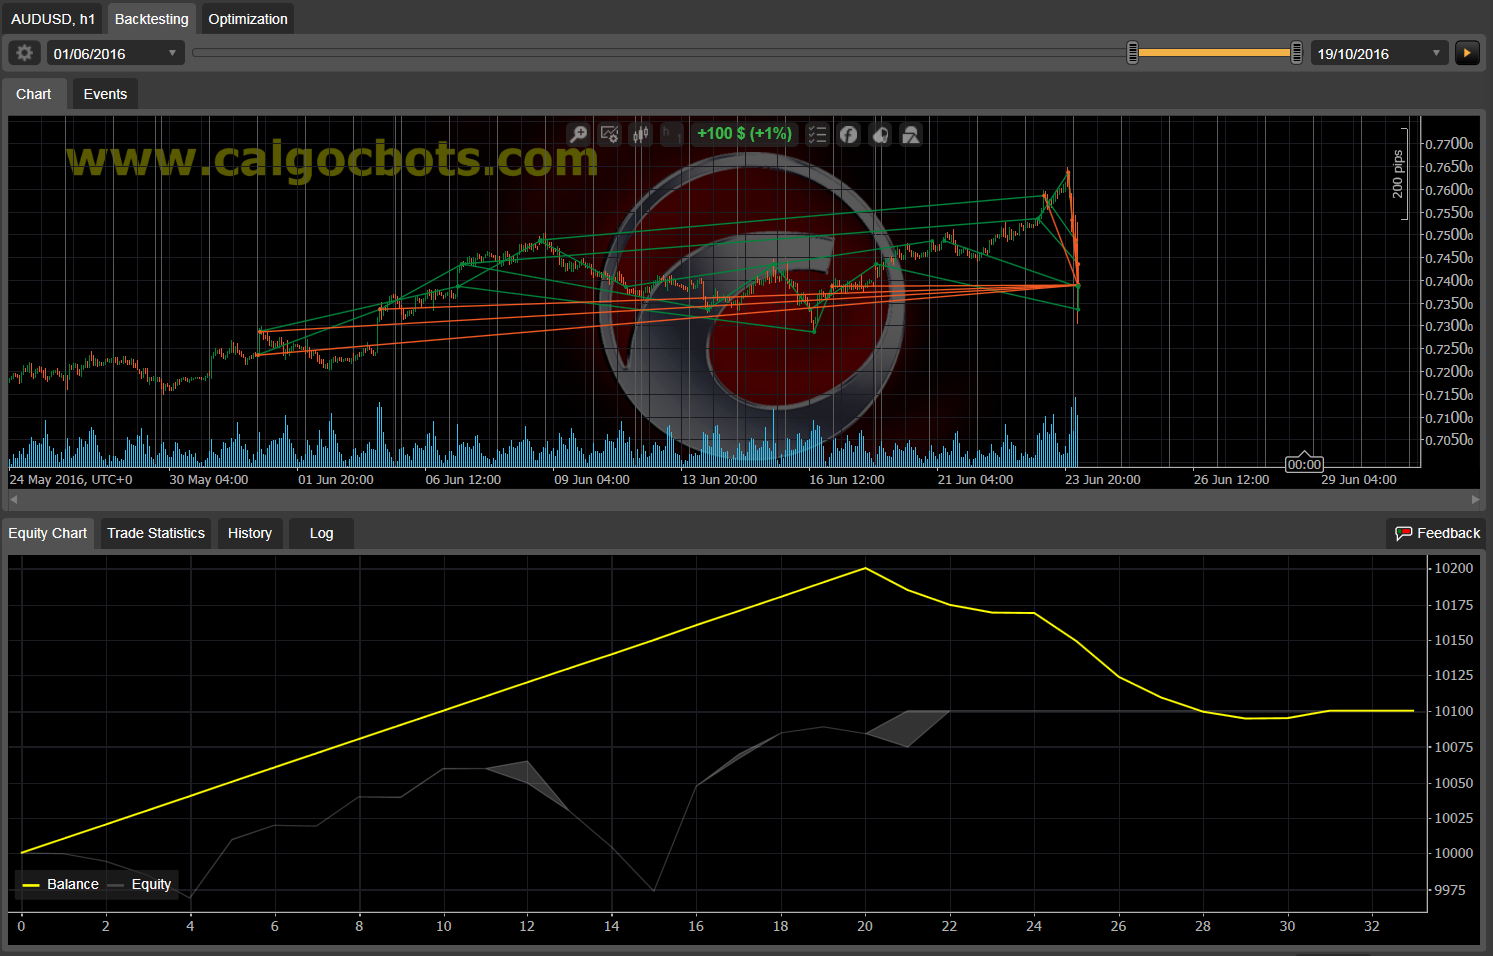 Dual Grid Hedge AUD USD 1h cAlgo cBots cTrader 1k 100 50 100 - 11 a